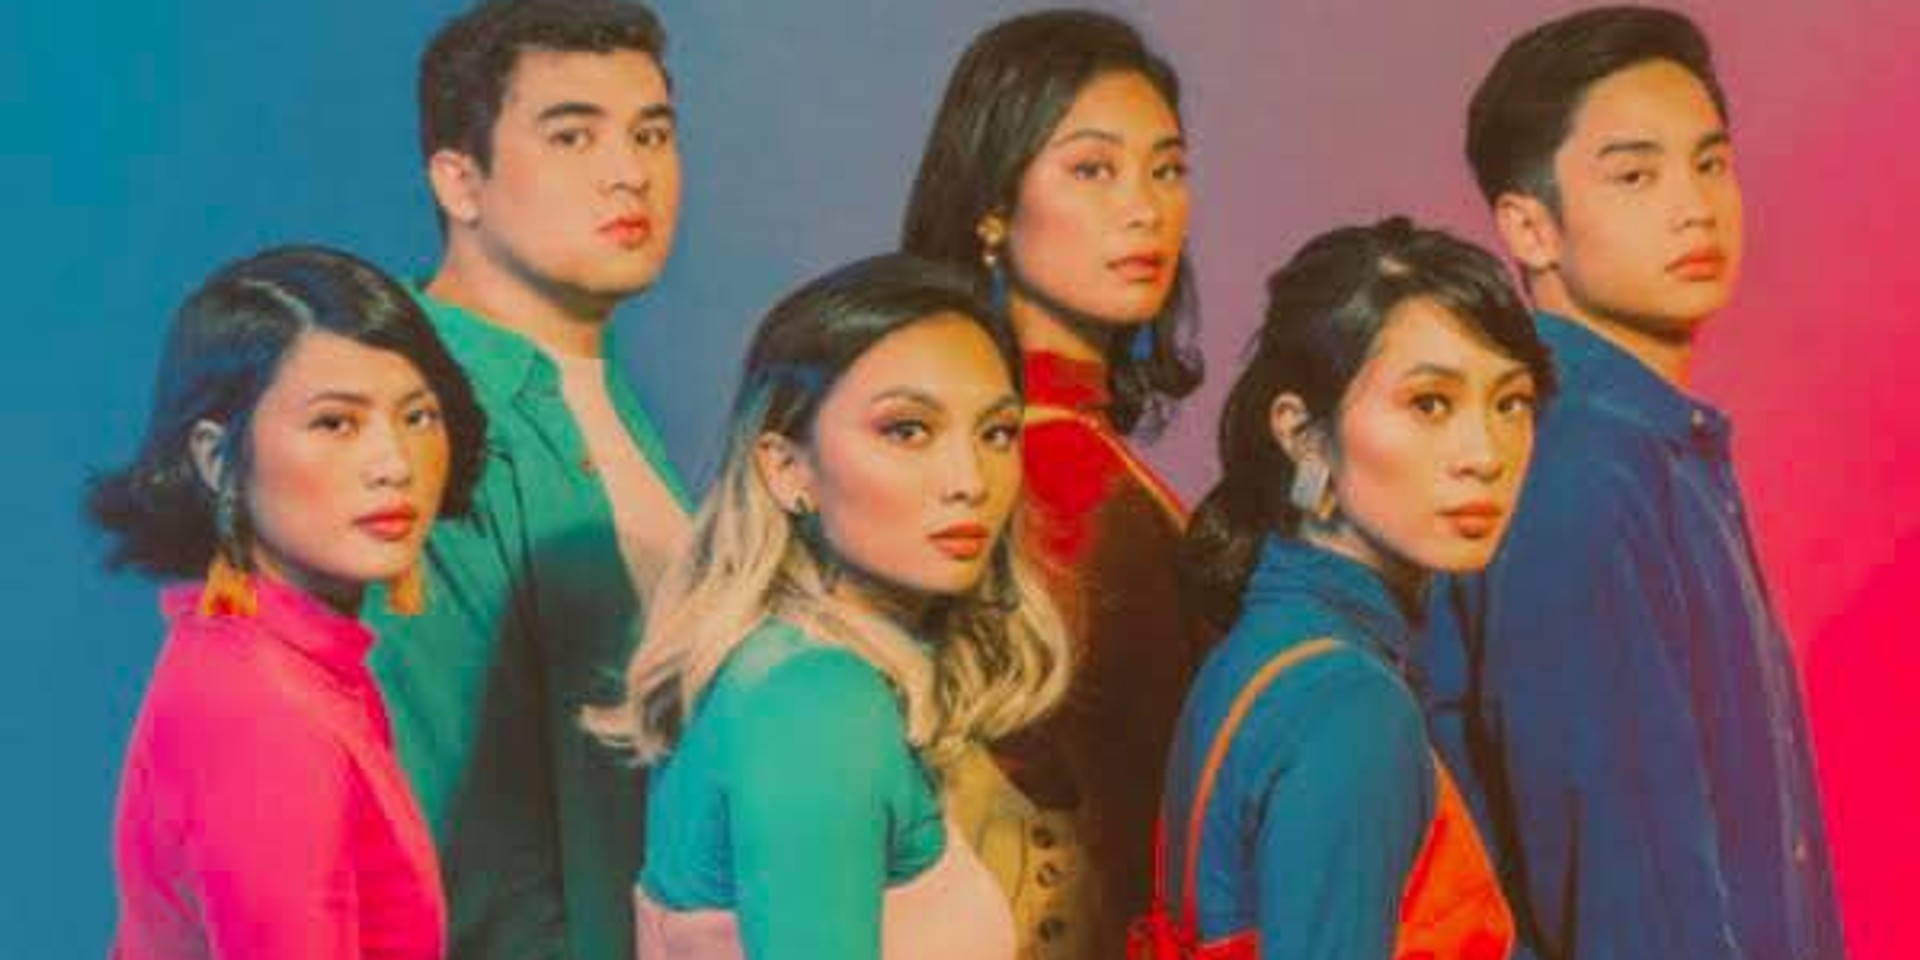 The Ransom Collective return with new single, 'I Don't Care' – listen